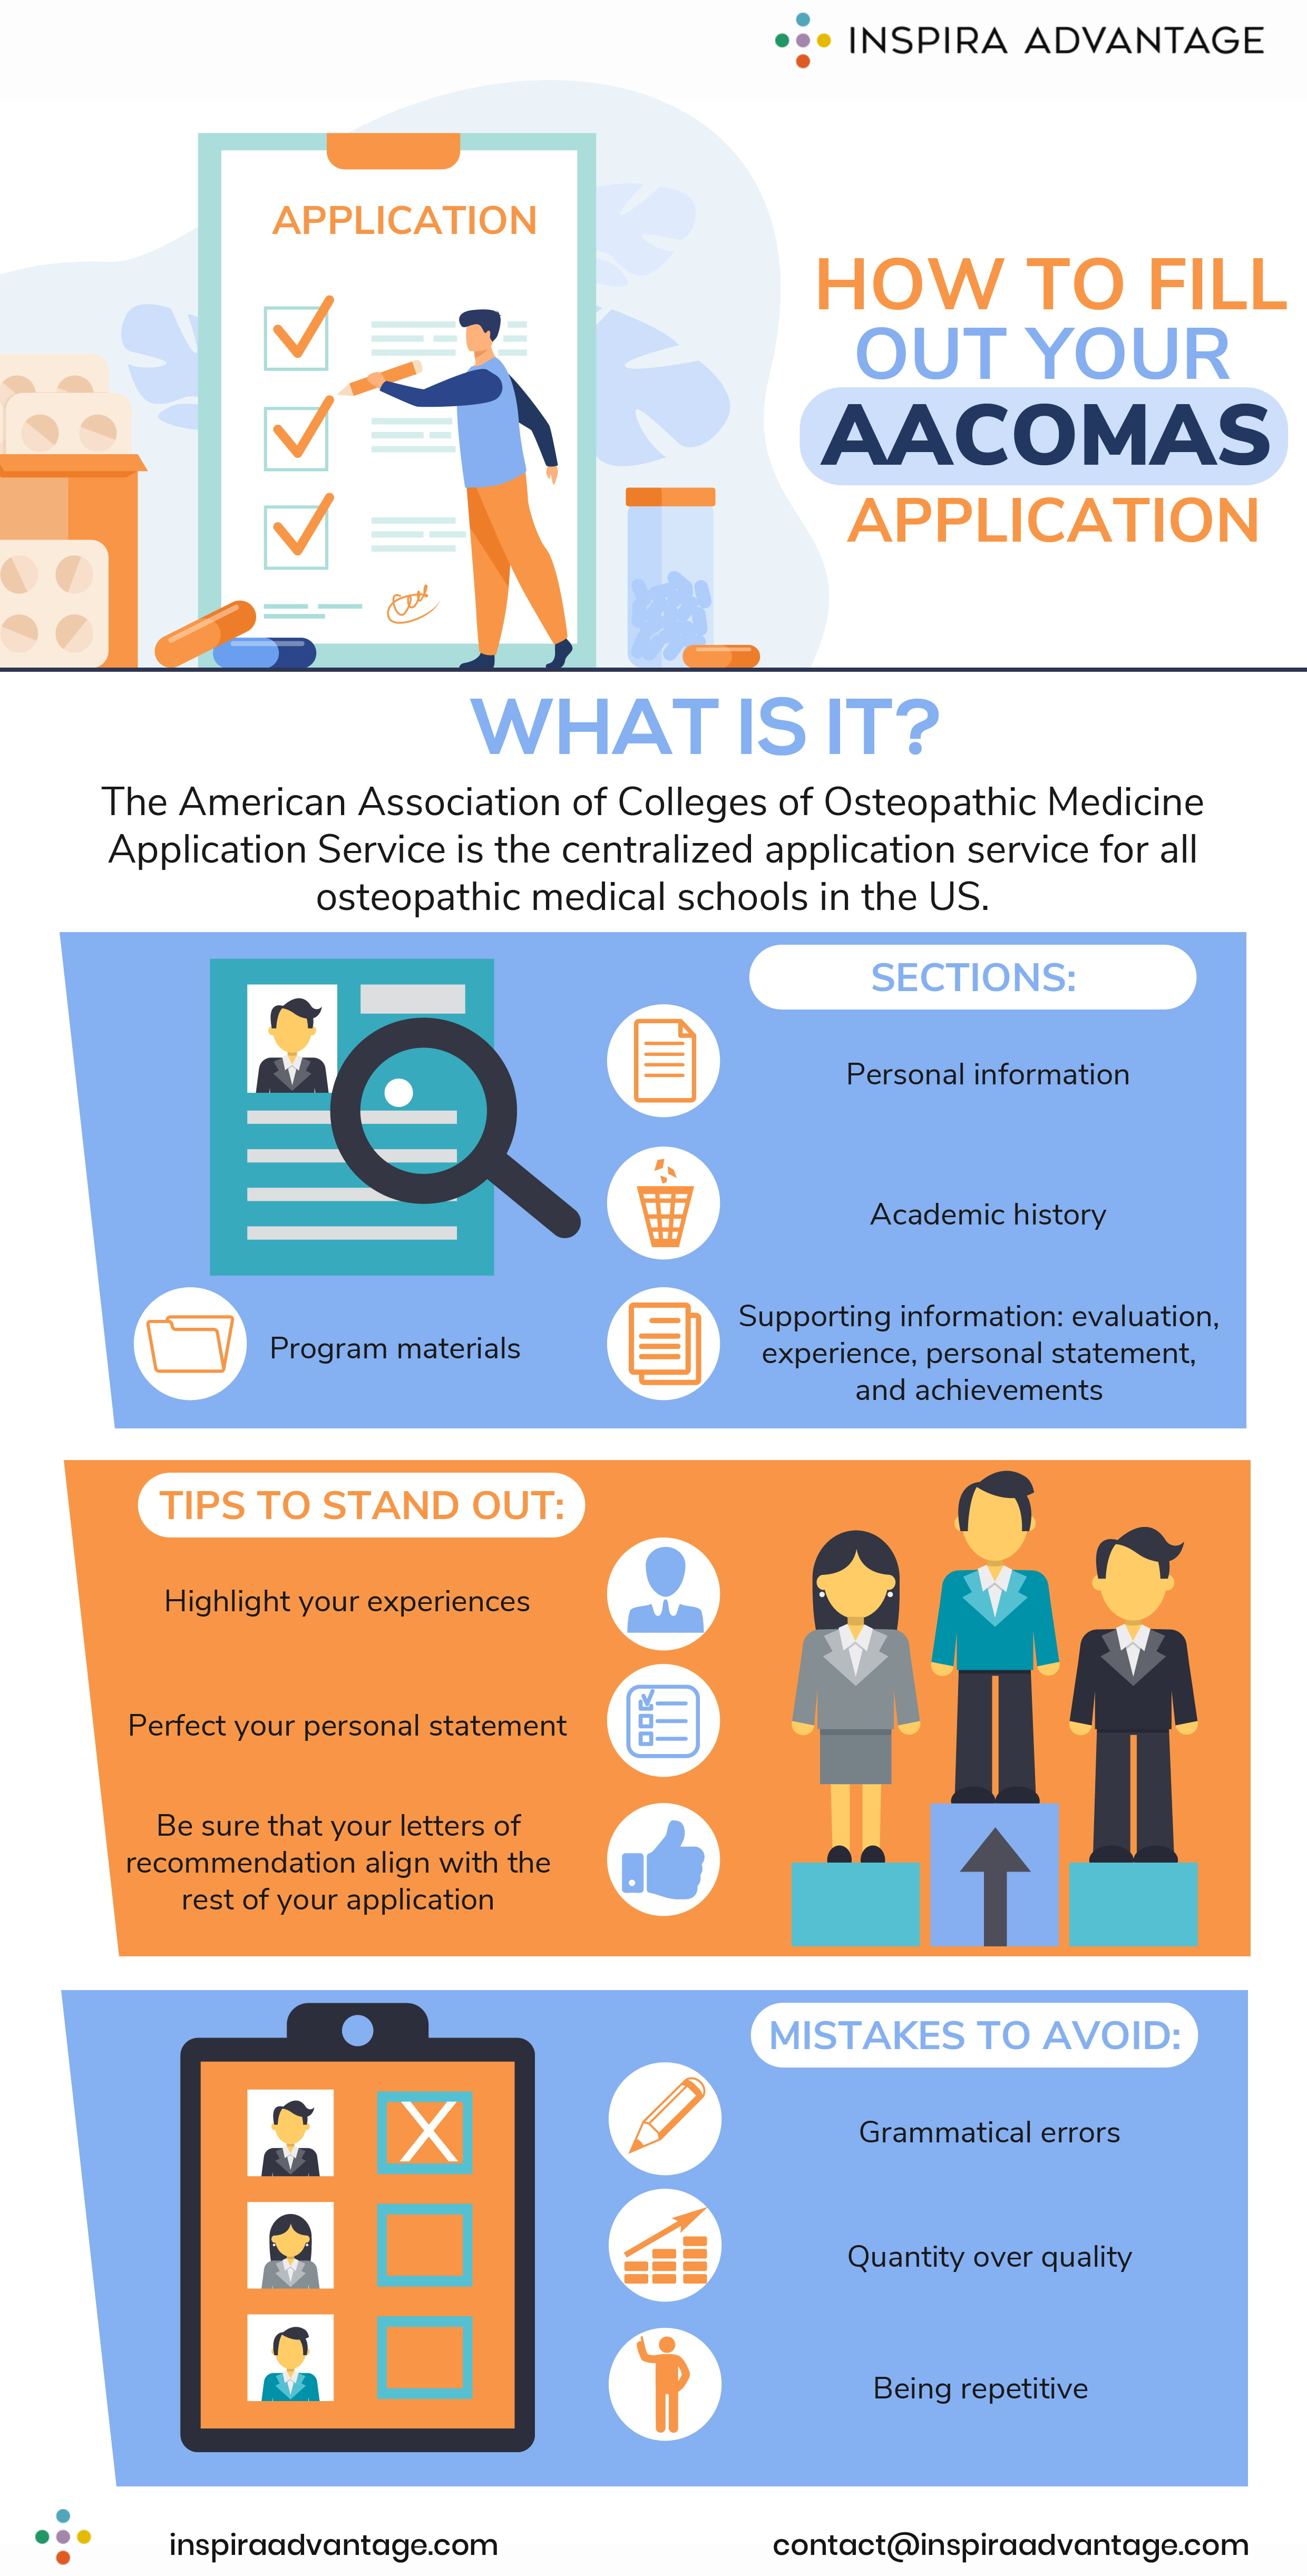 How to fill out your AACOMAS application